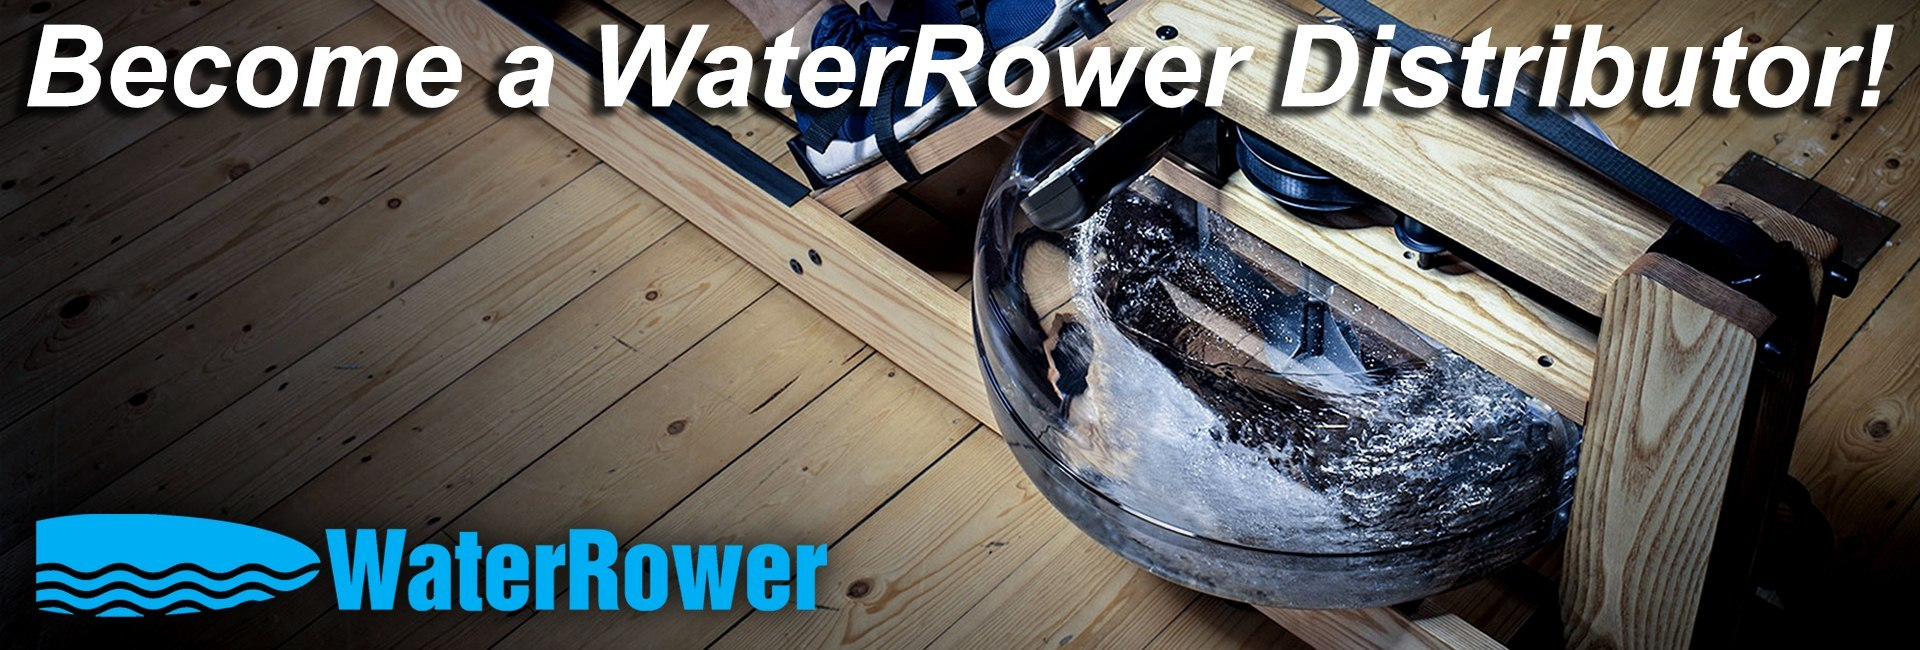 become-a-waterrower-distributor.jpg